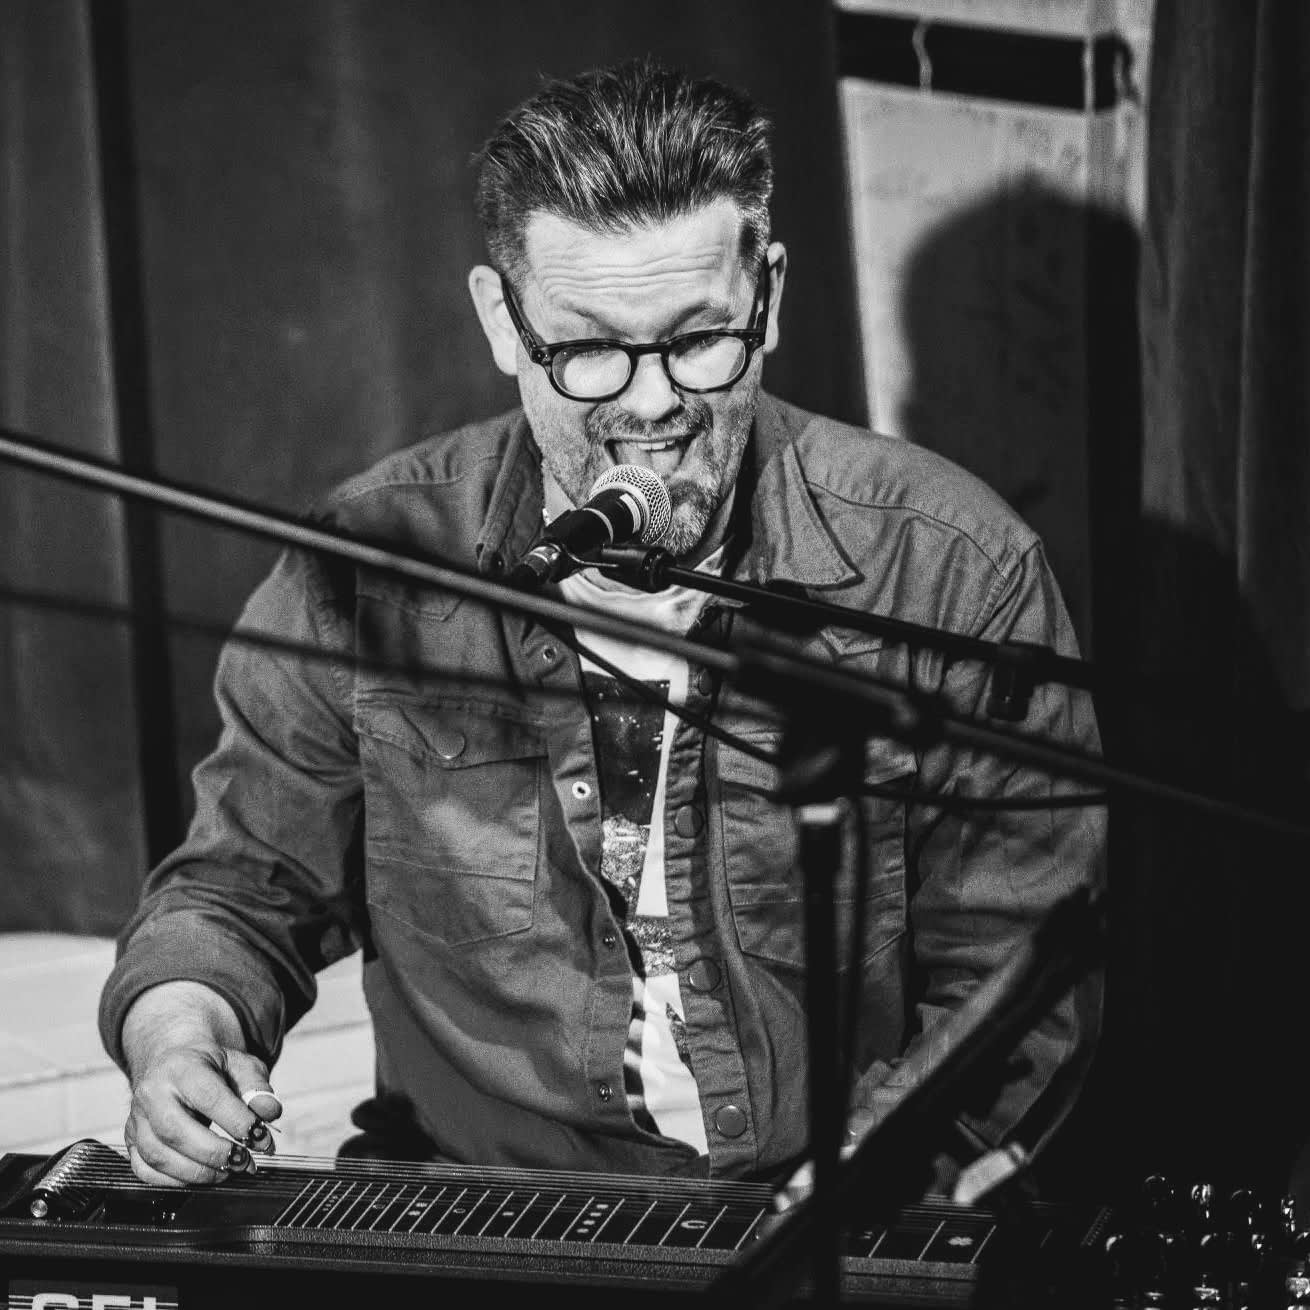 Peter Gunnebro - pedal steel player in the band